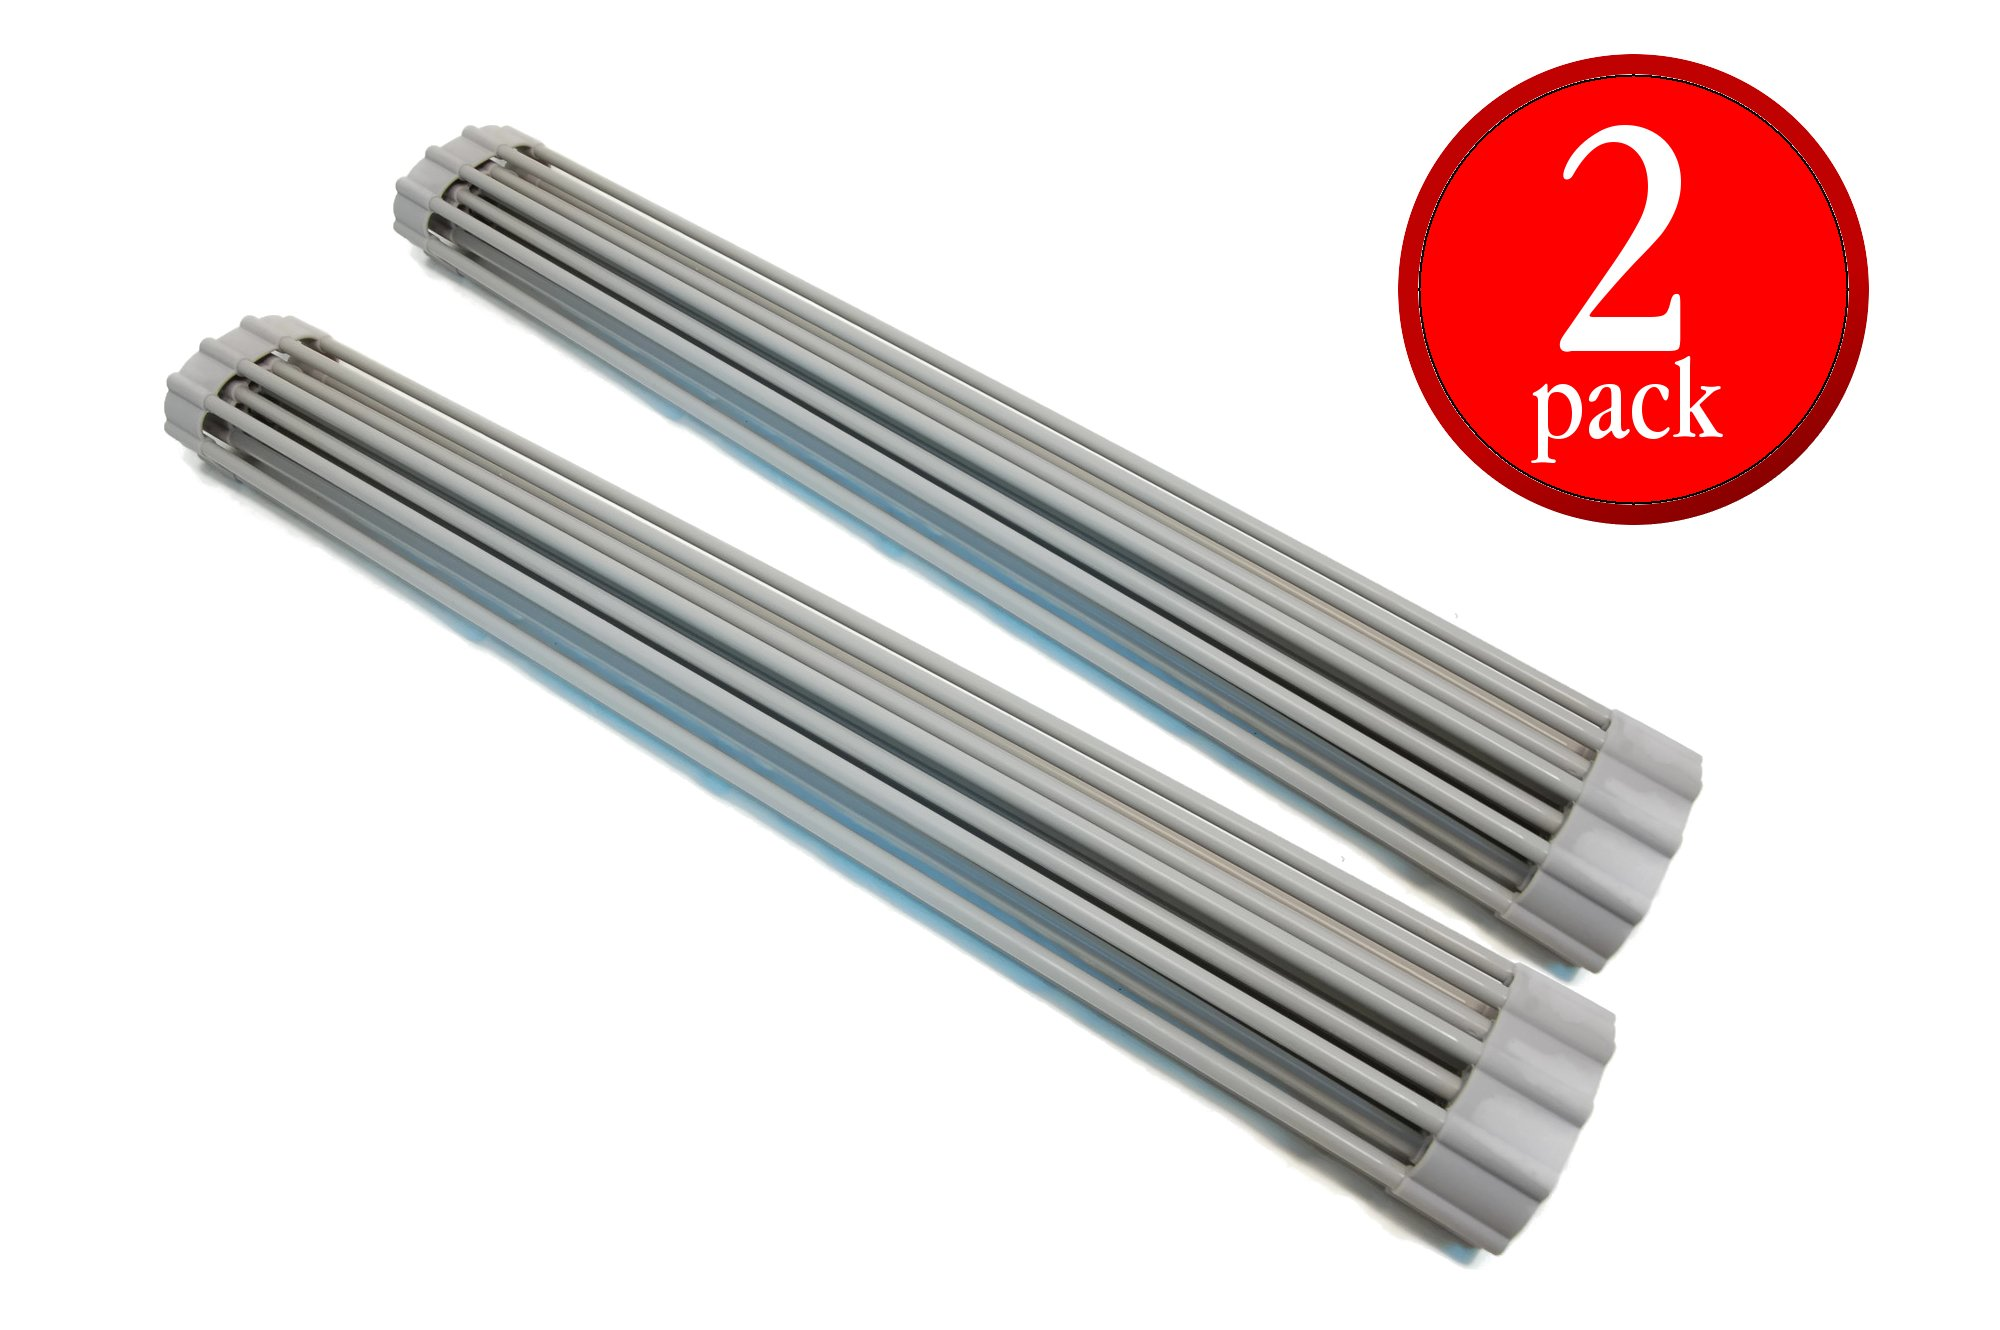 Eretz (2pc) Premium Silicone Coated Roll Up Over Sink Drain Rack (Grey)